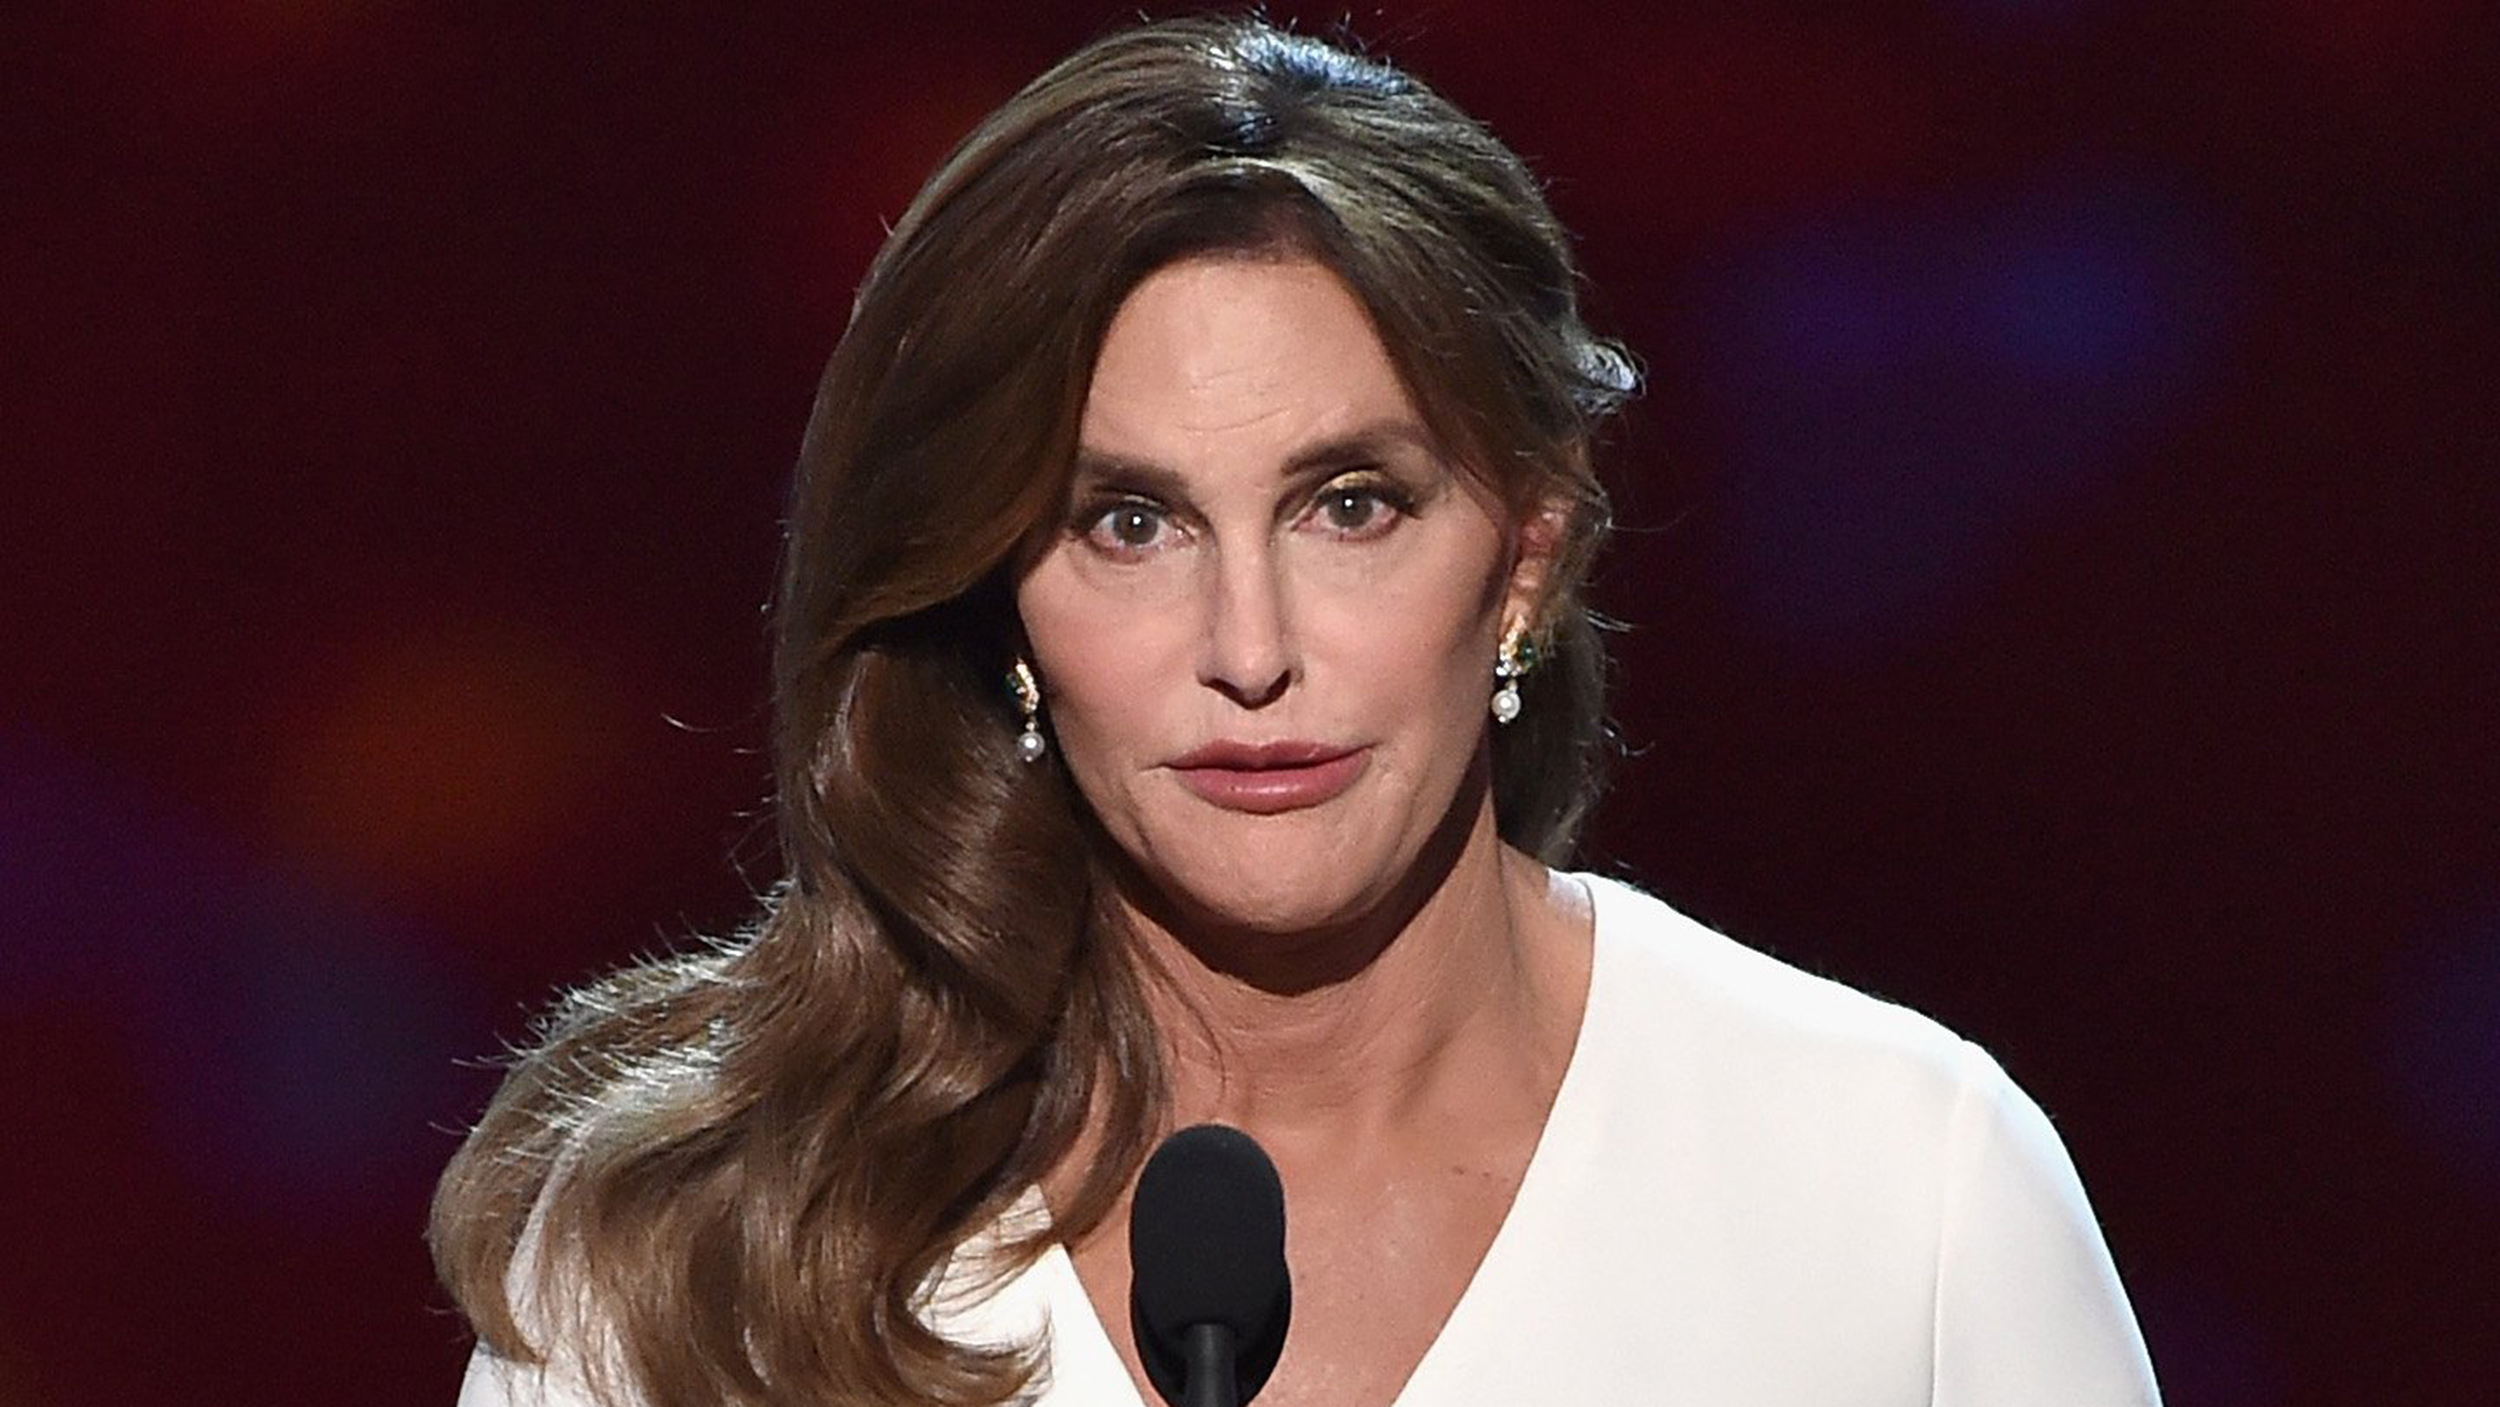 caitlyn jenner - photo #22